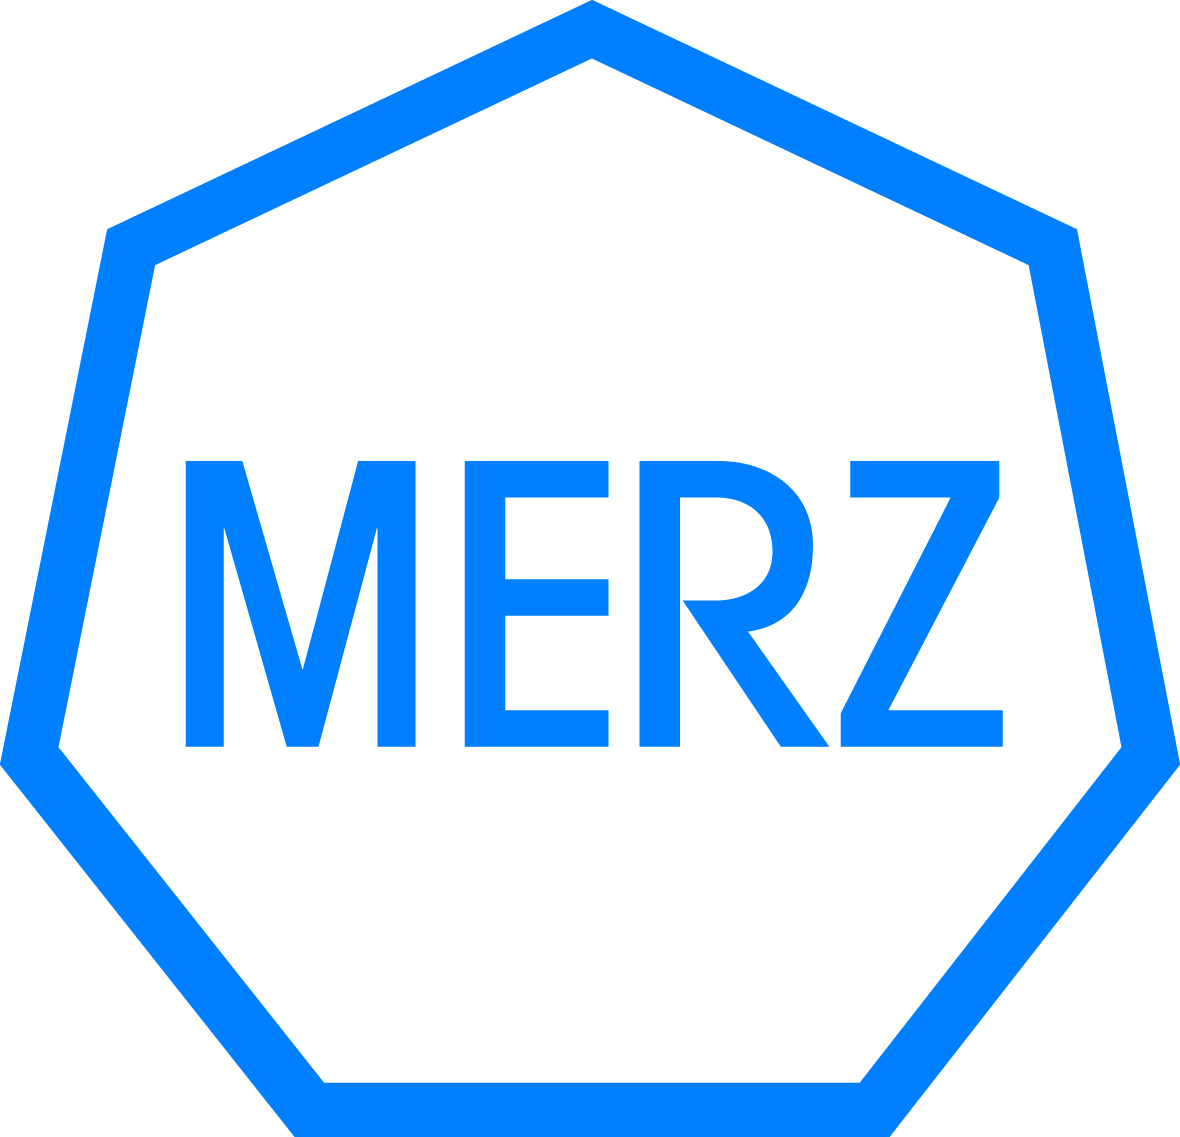 Merz Pharma GmbH & Co KGaA_logo